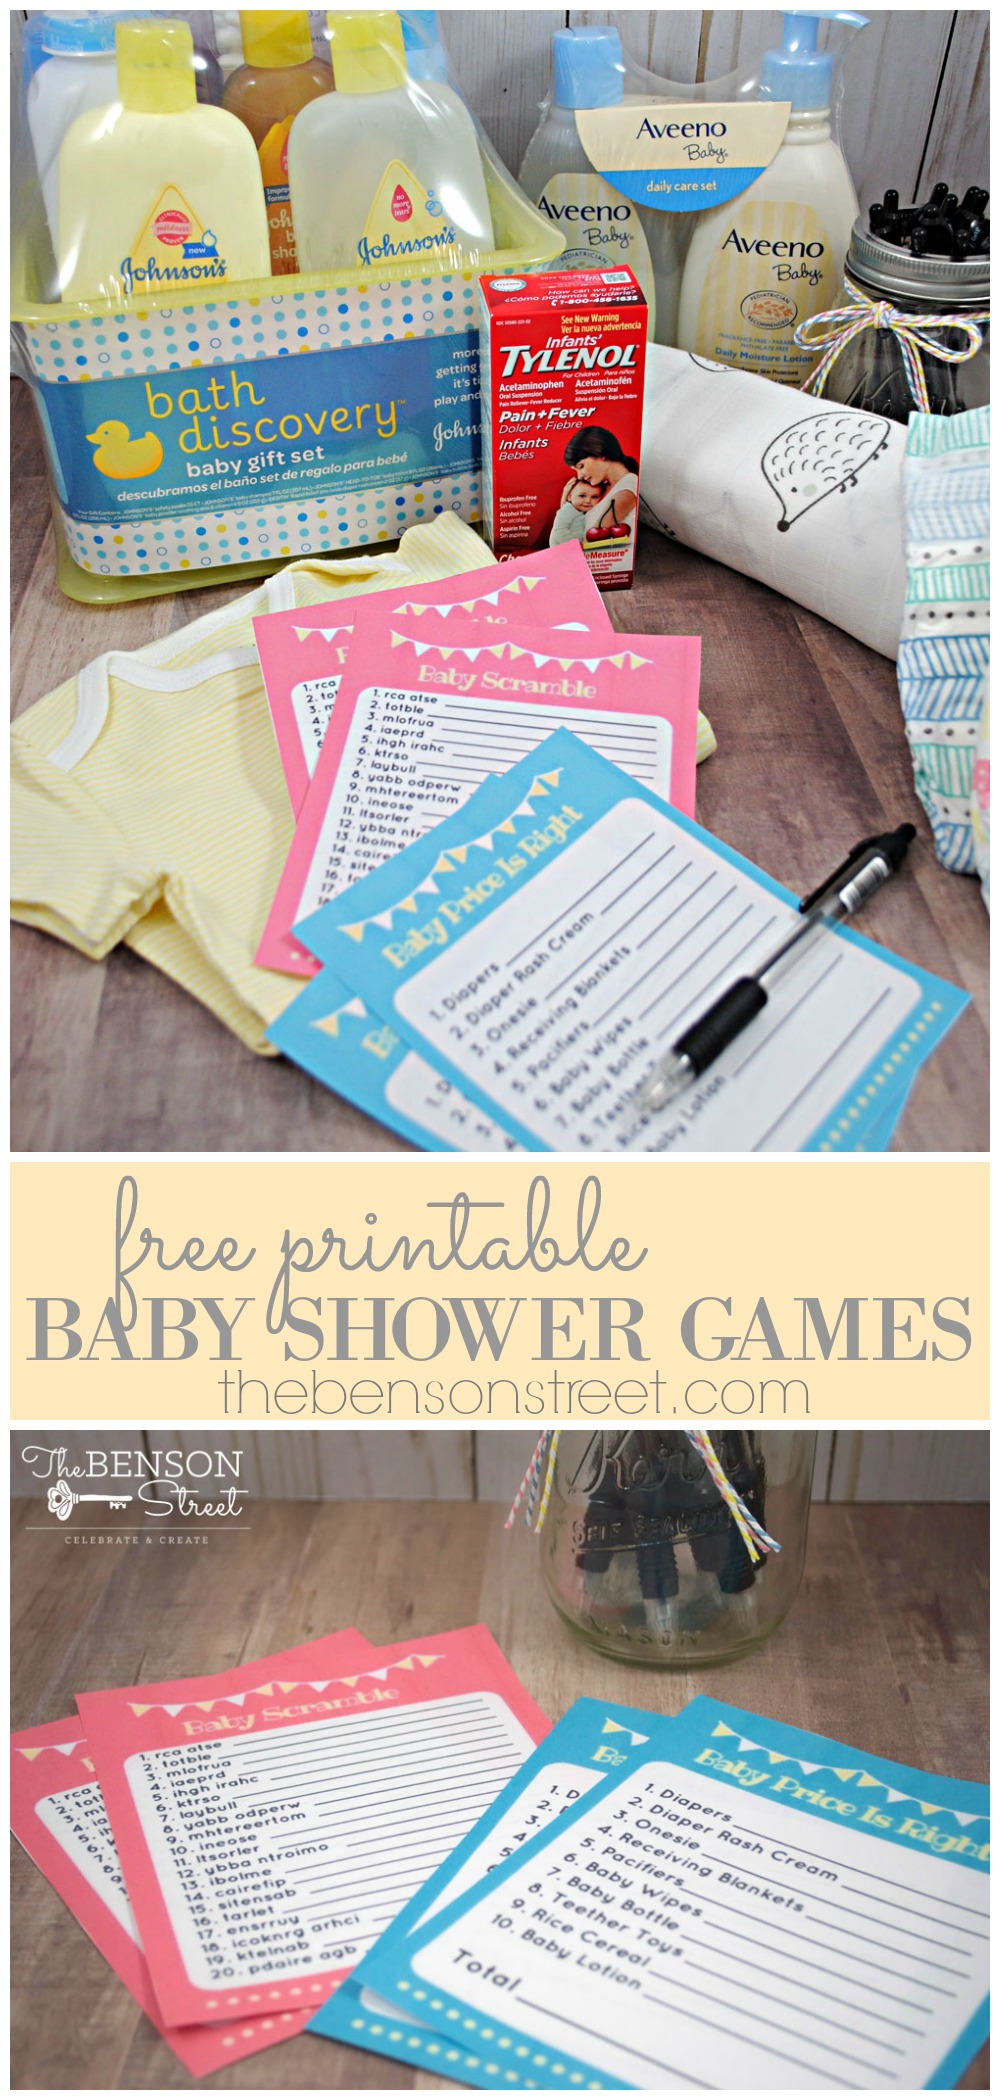 Free Printable Baby Shower Games - The Benson Street